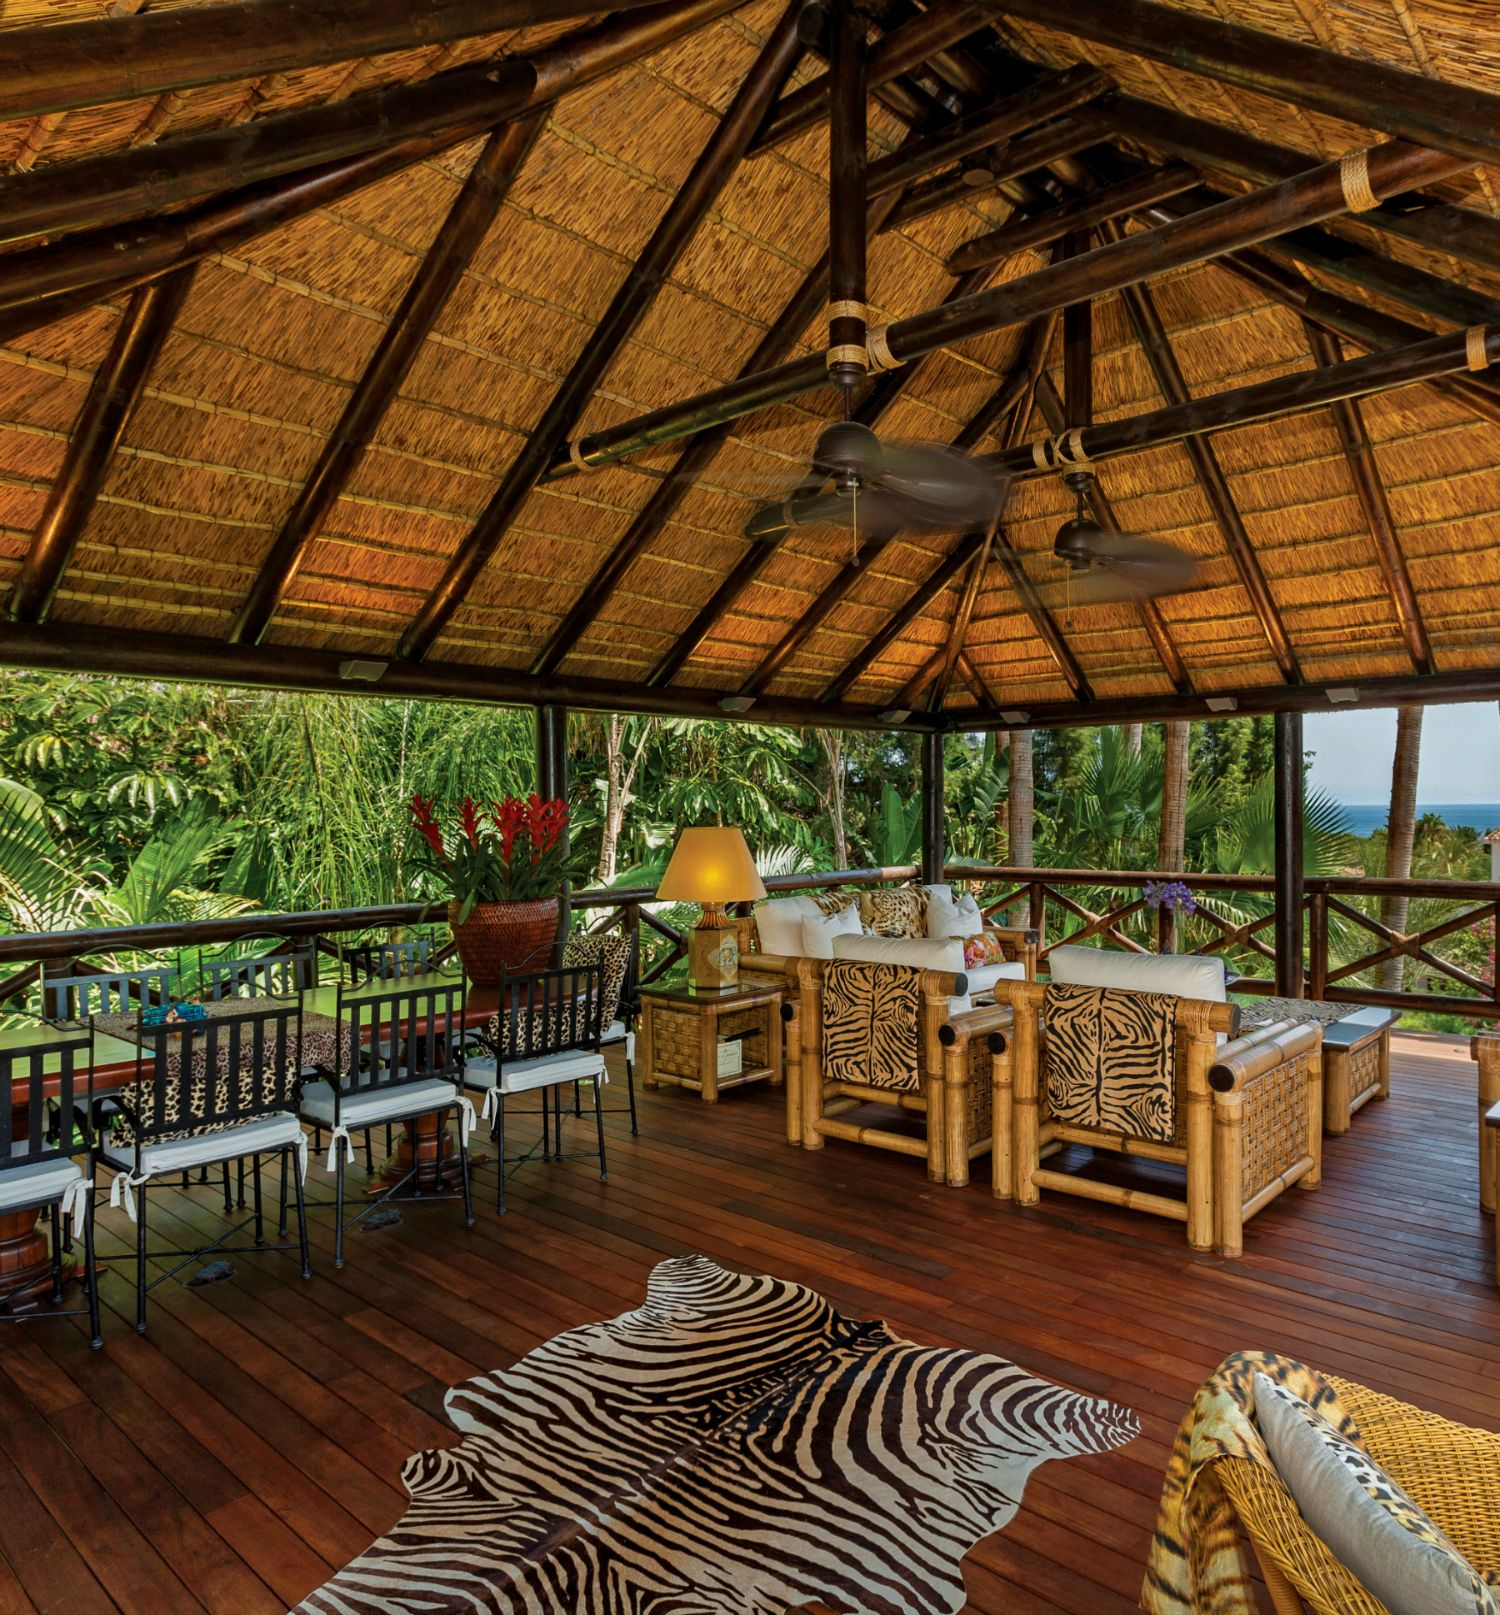 Thatched Gazebo With African Decor With Views Of The Ocean